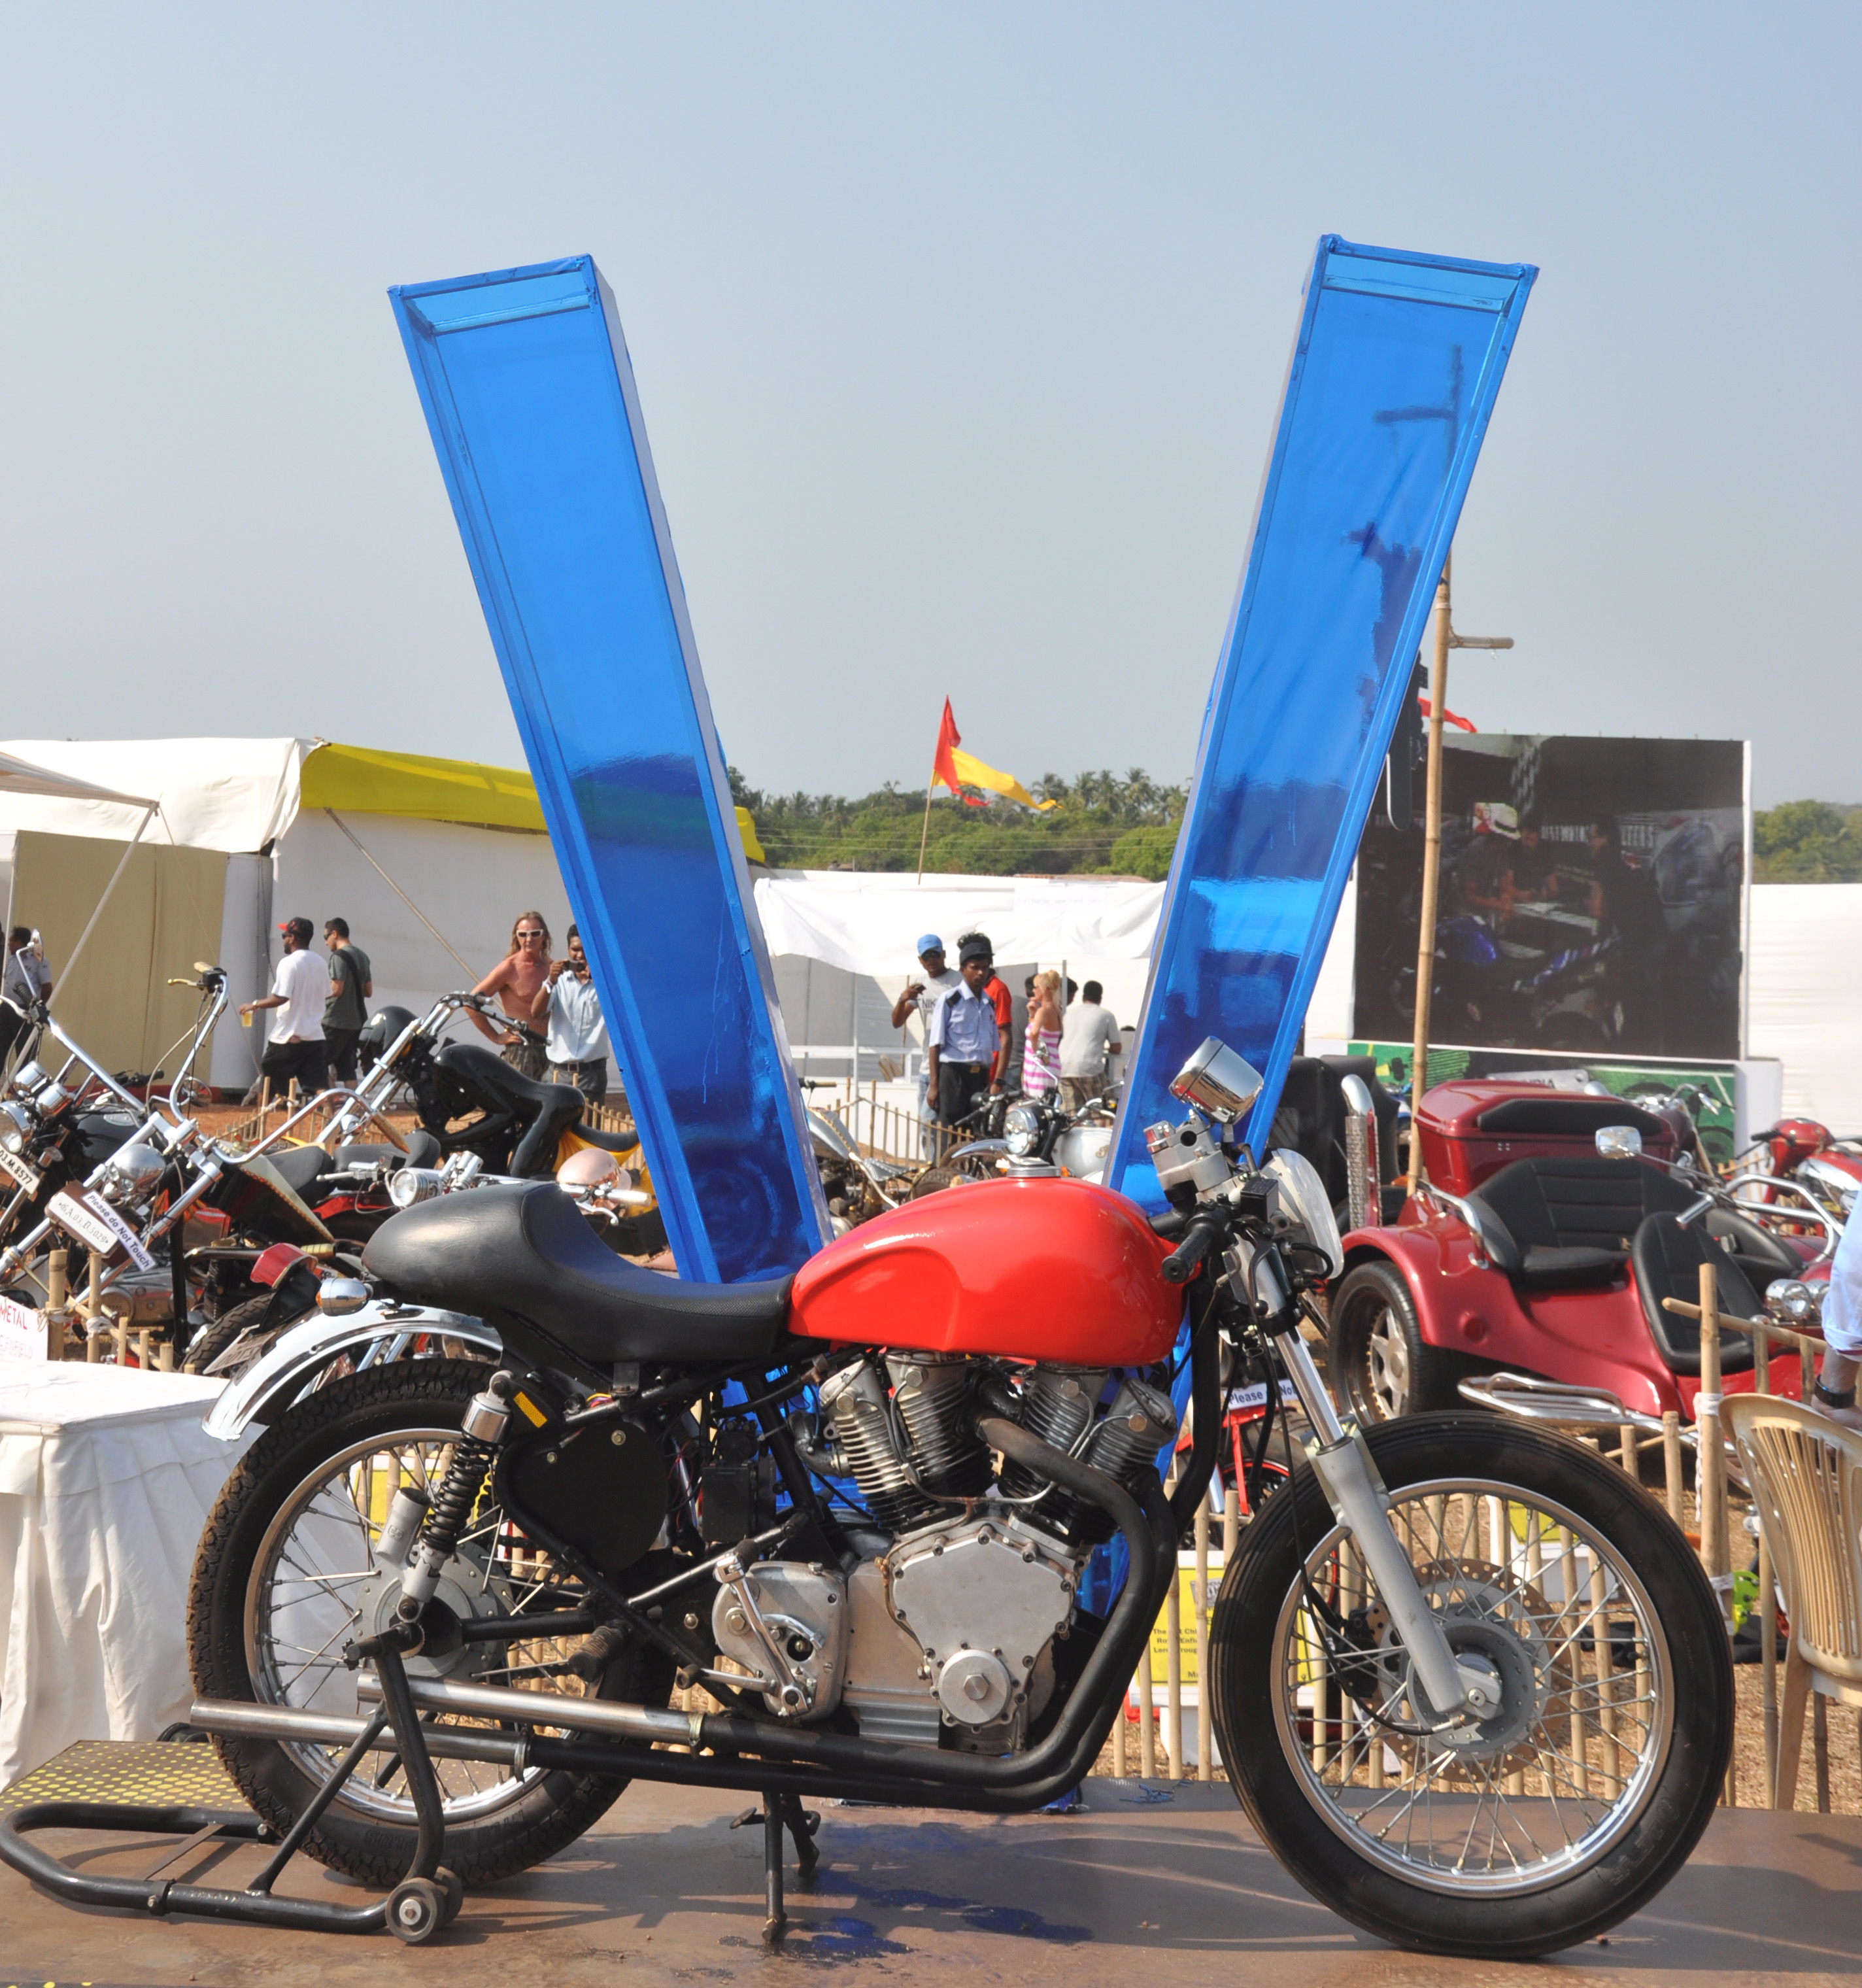 The Royal Enfield V-twin built by Anand Bhalerao and Dean Fernandes.